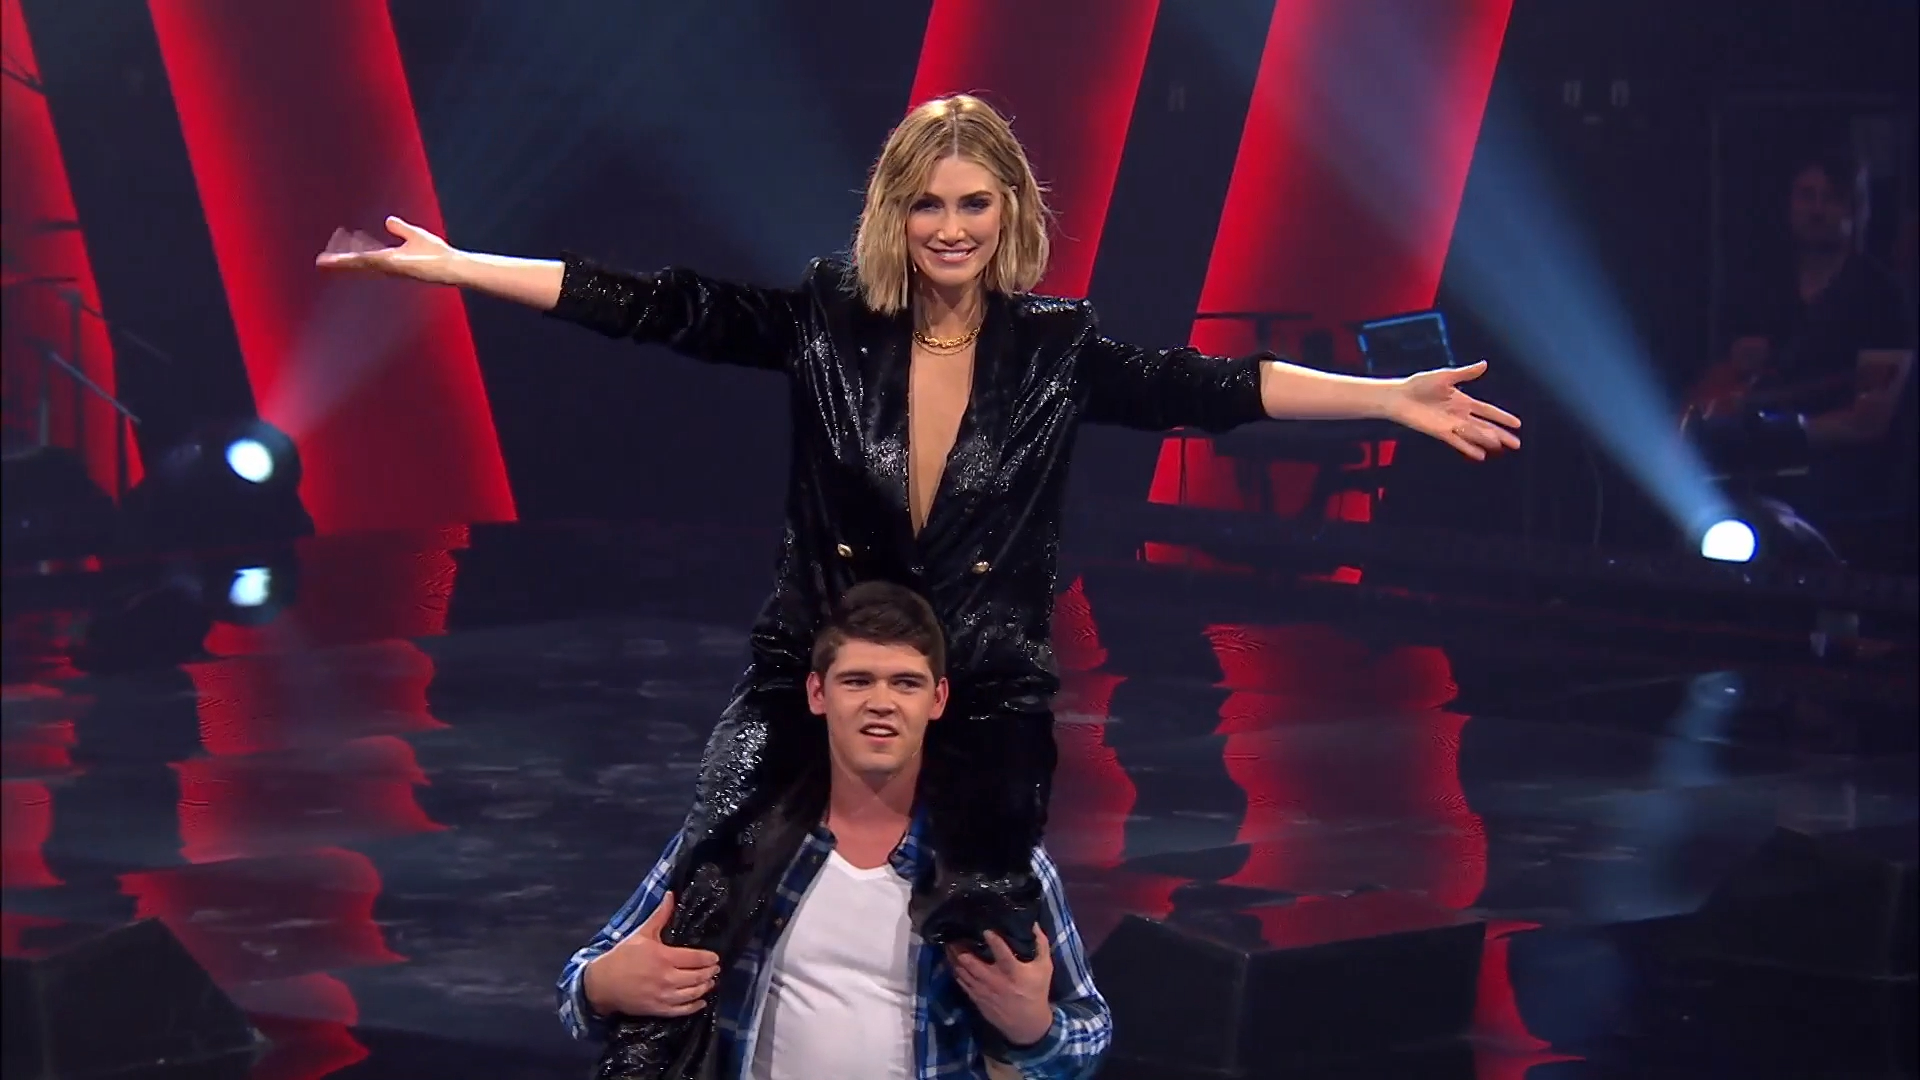 Voice Coach Delta Goodrem gets squatted by an artist at Blind Auditions